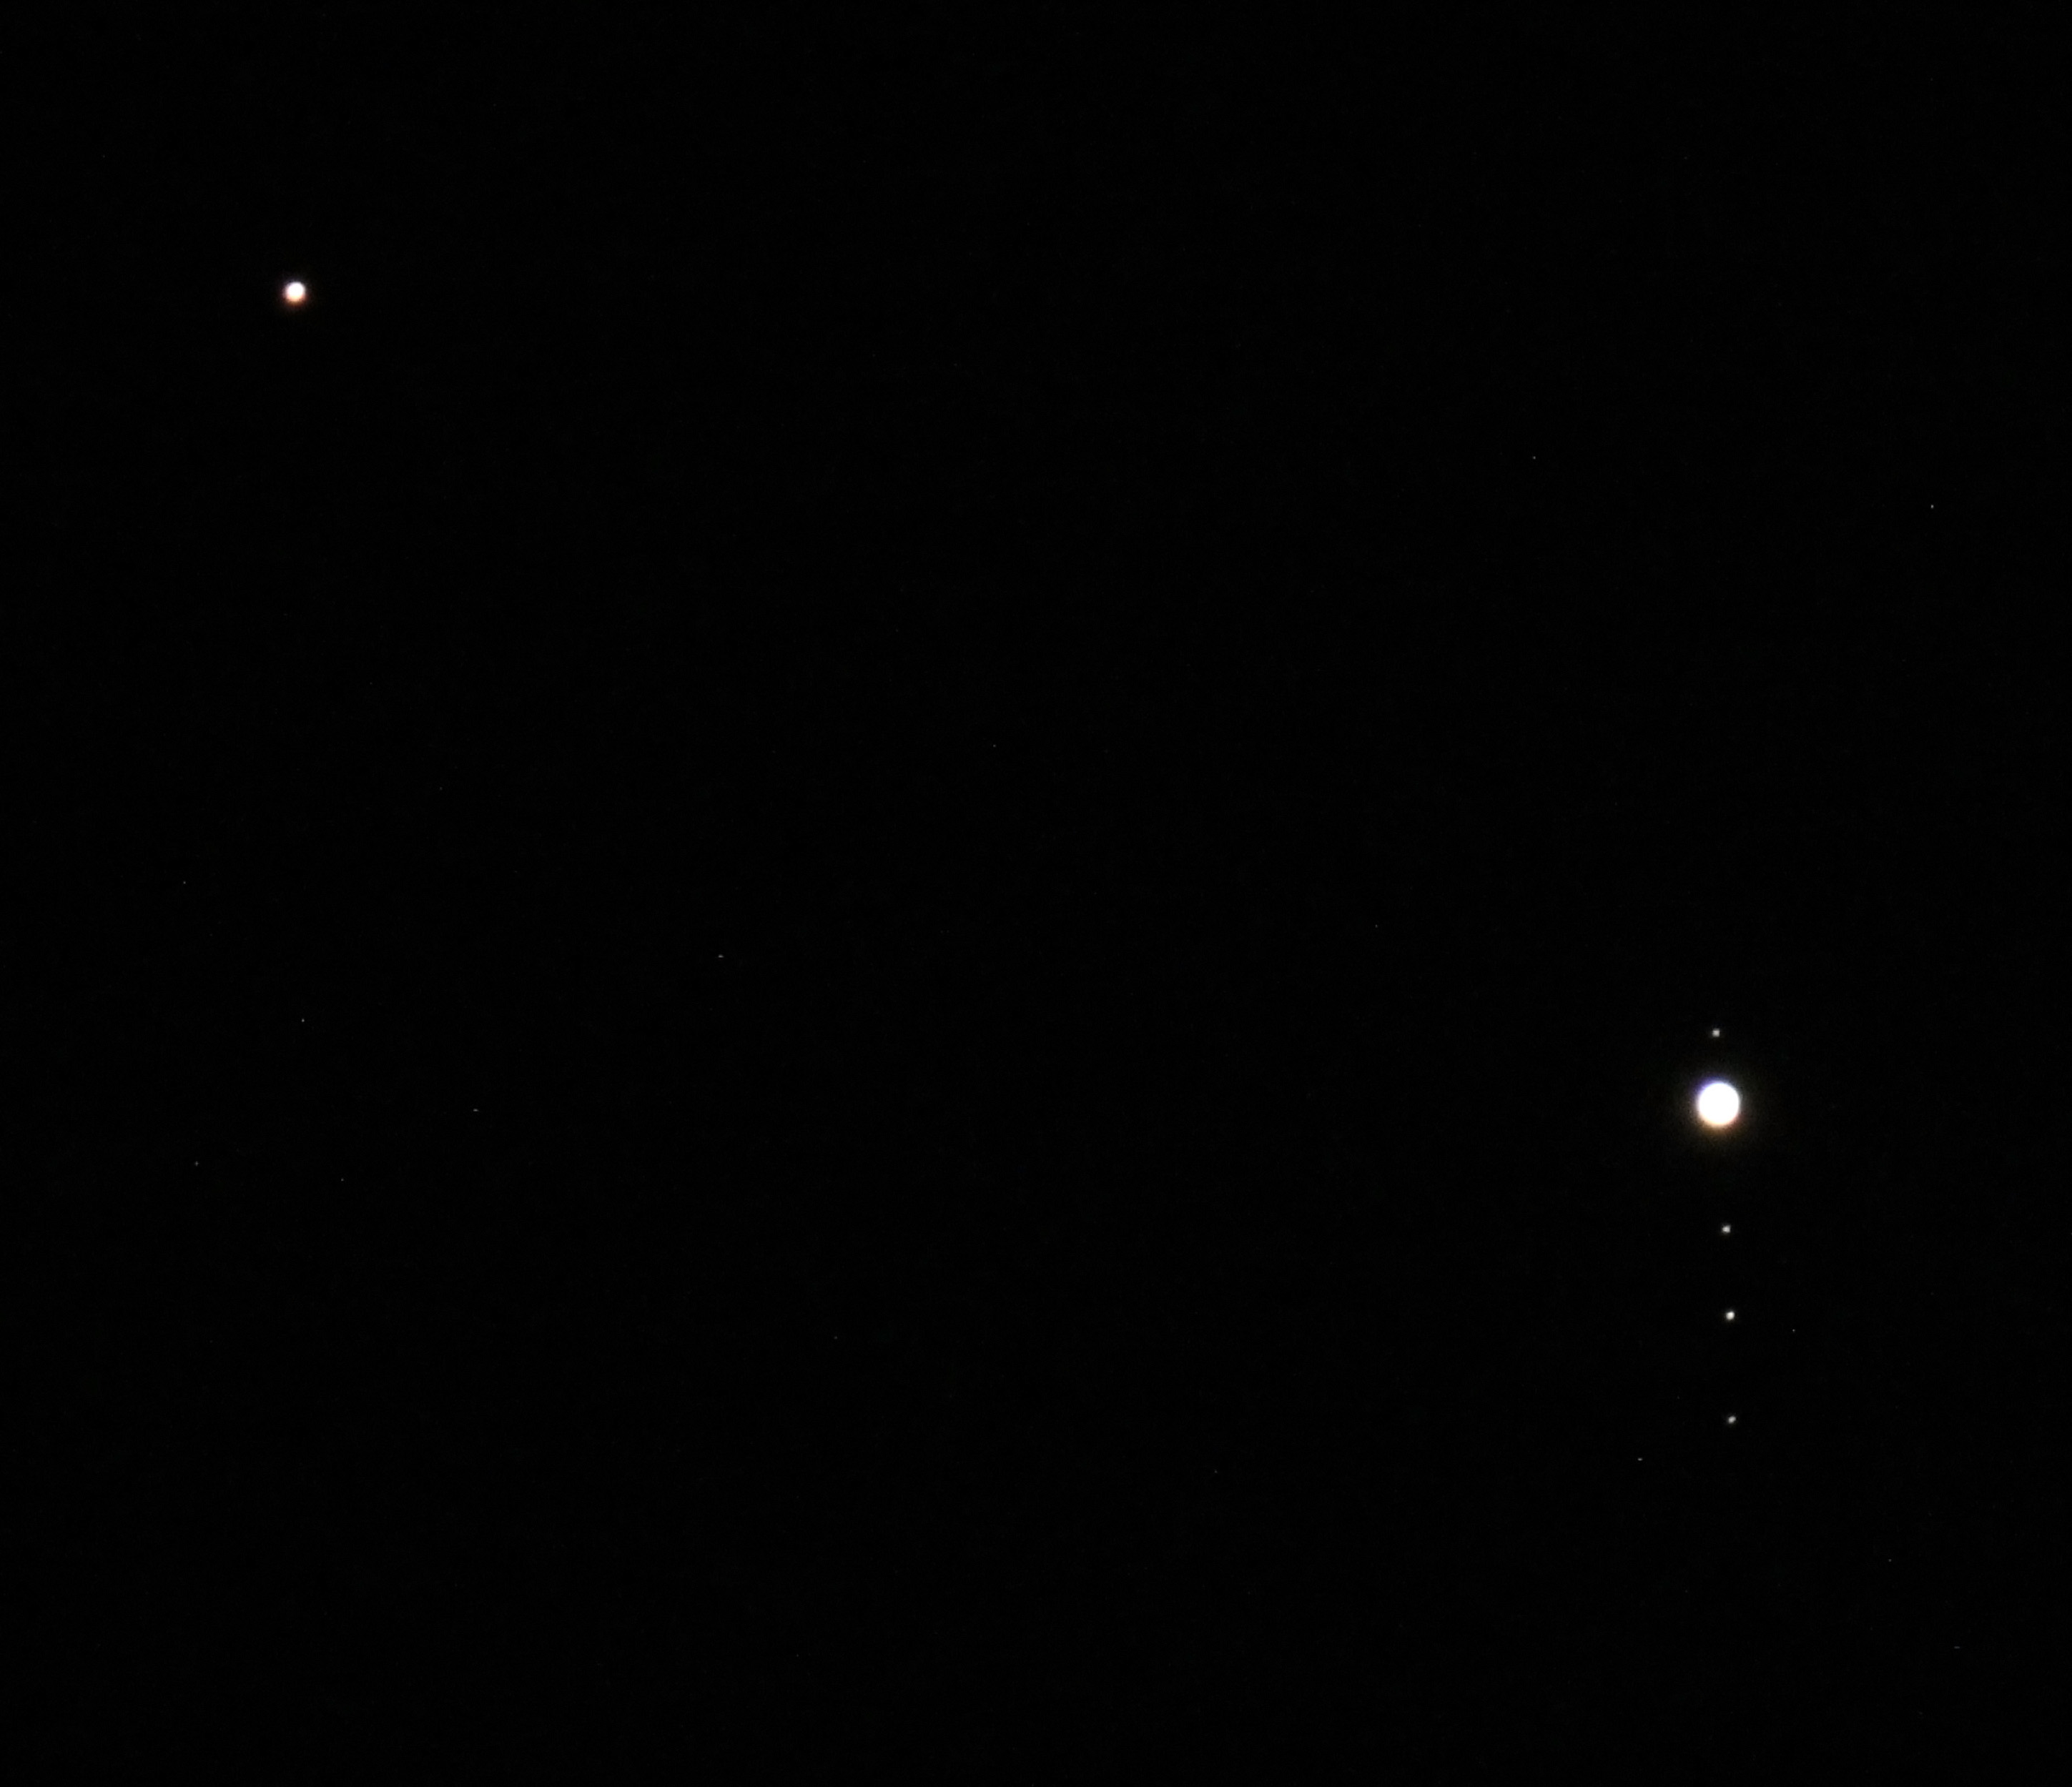 Mars and Jupiter: Photographer Spies a Gas Giant with the 'Angry Red Planet'